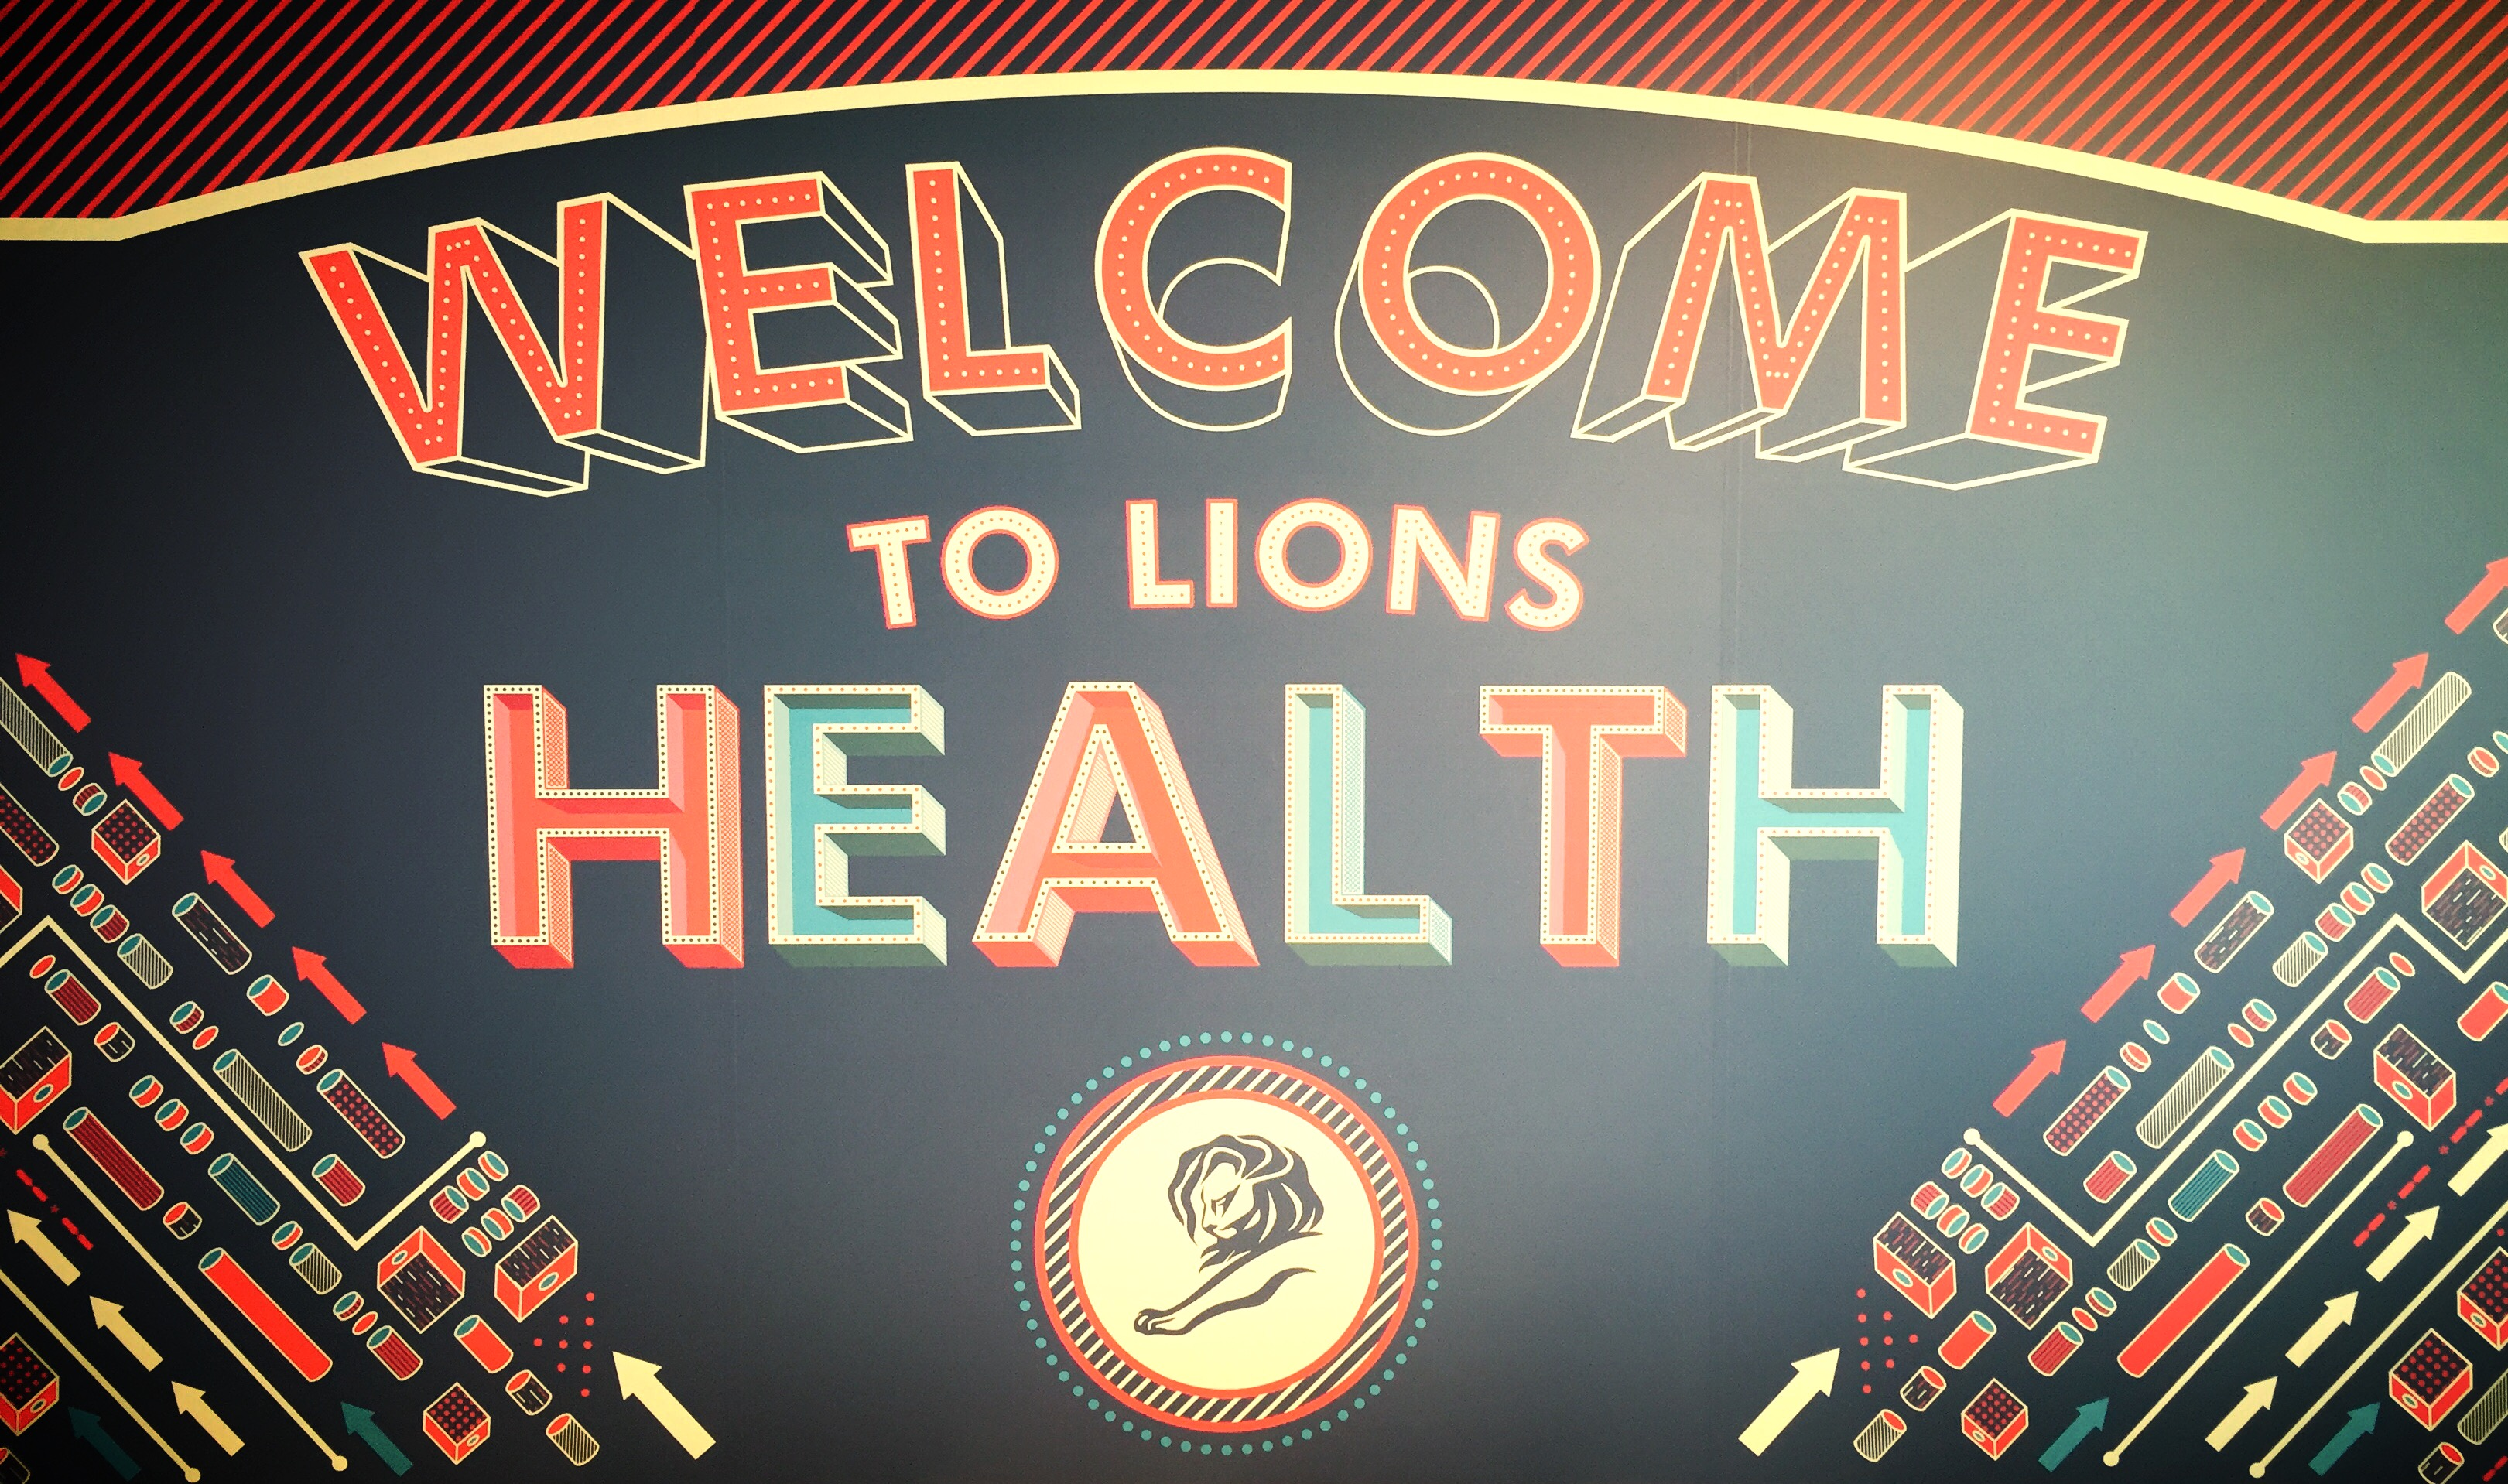 Health Lions